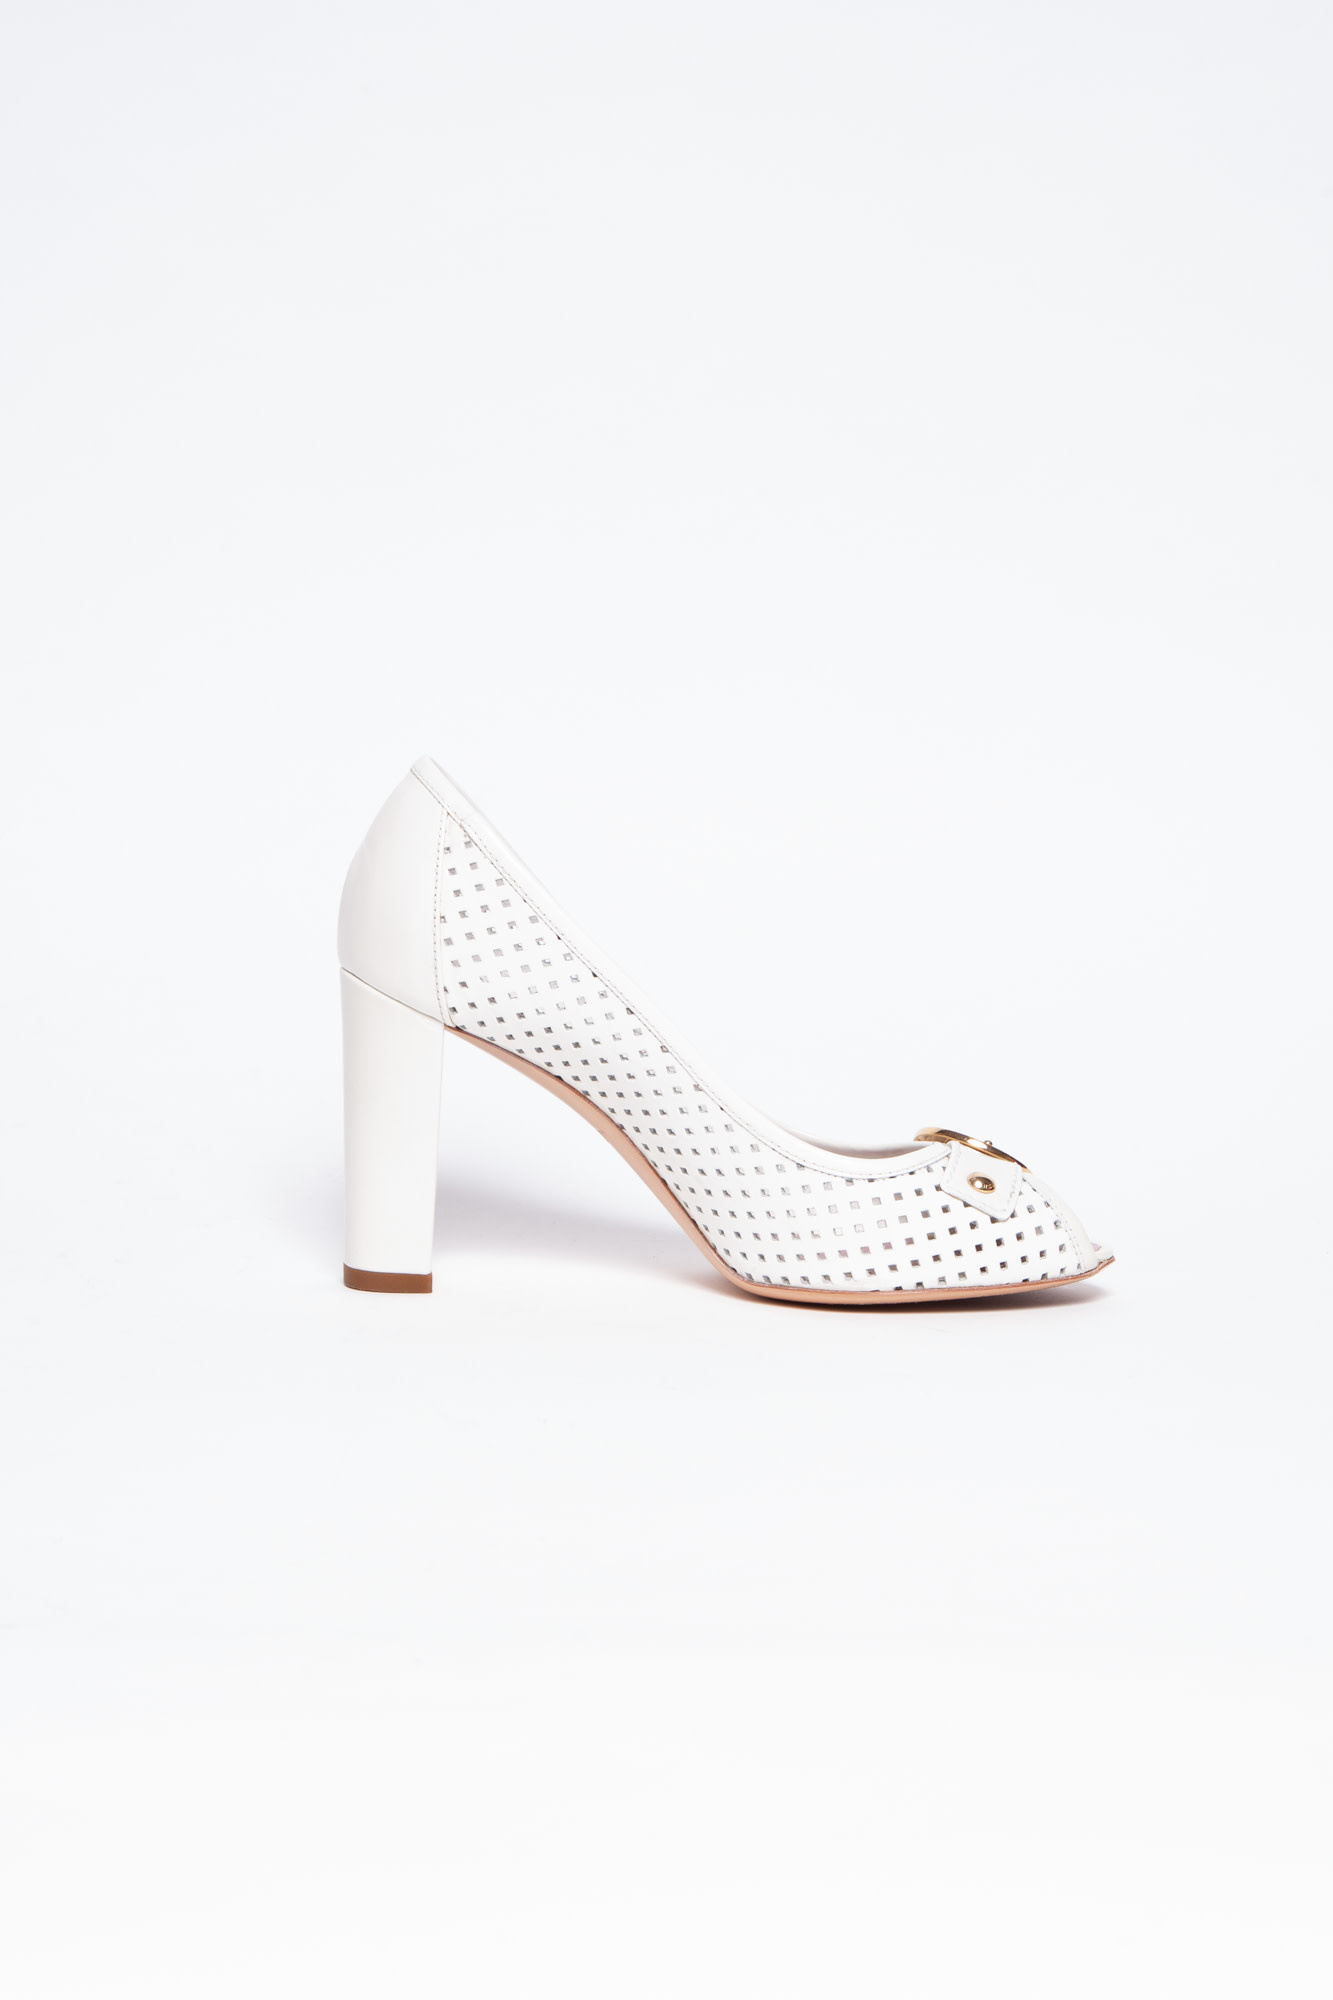 Louis Vuitton WHITE PERFORATED LEATHER OPEN-TOE PUMPS